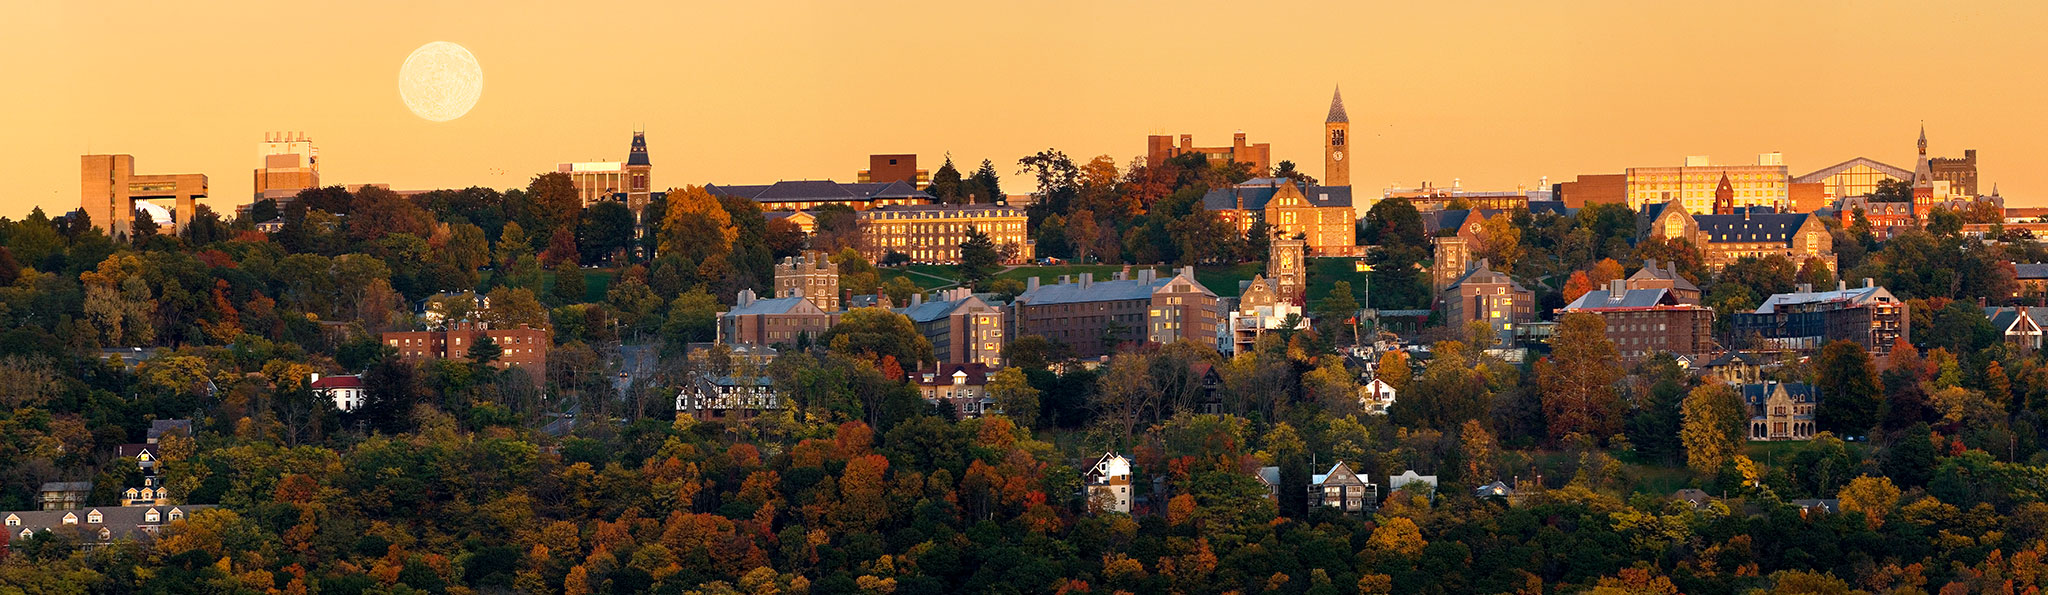 A panoramic of campus during an autumn sunset (with full moon rising) from the west hill.